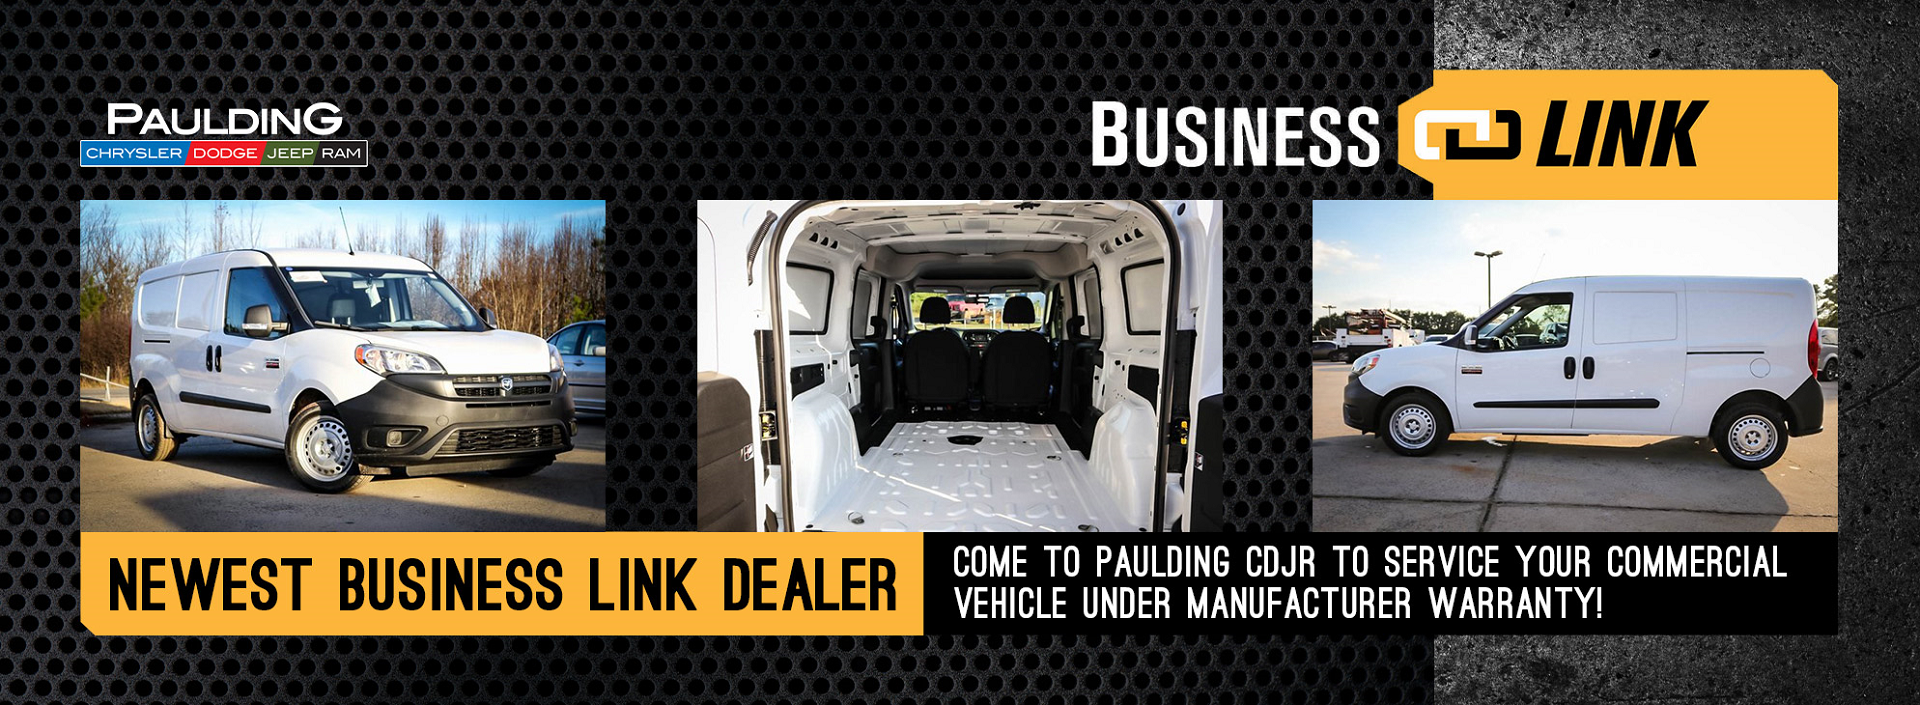 Paulding CDJR is now proudly offering BusinessLink services